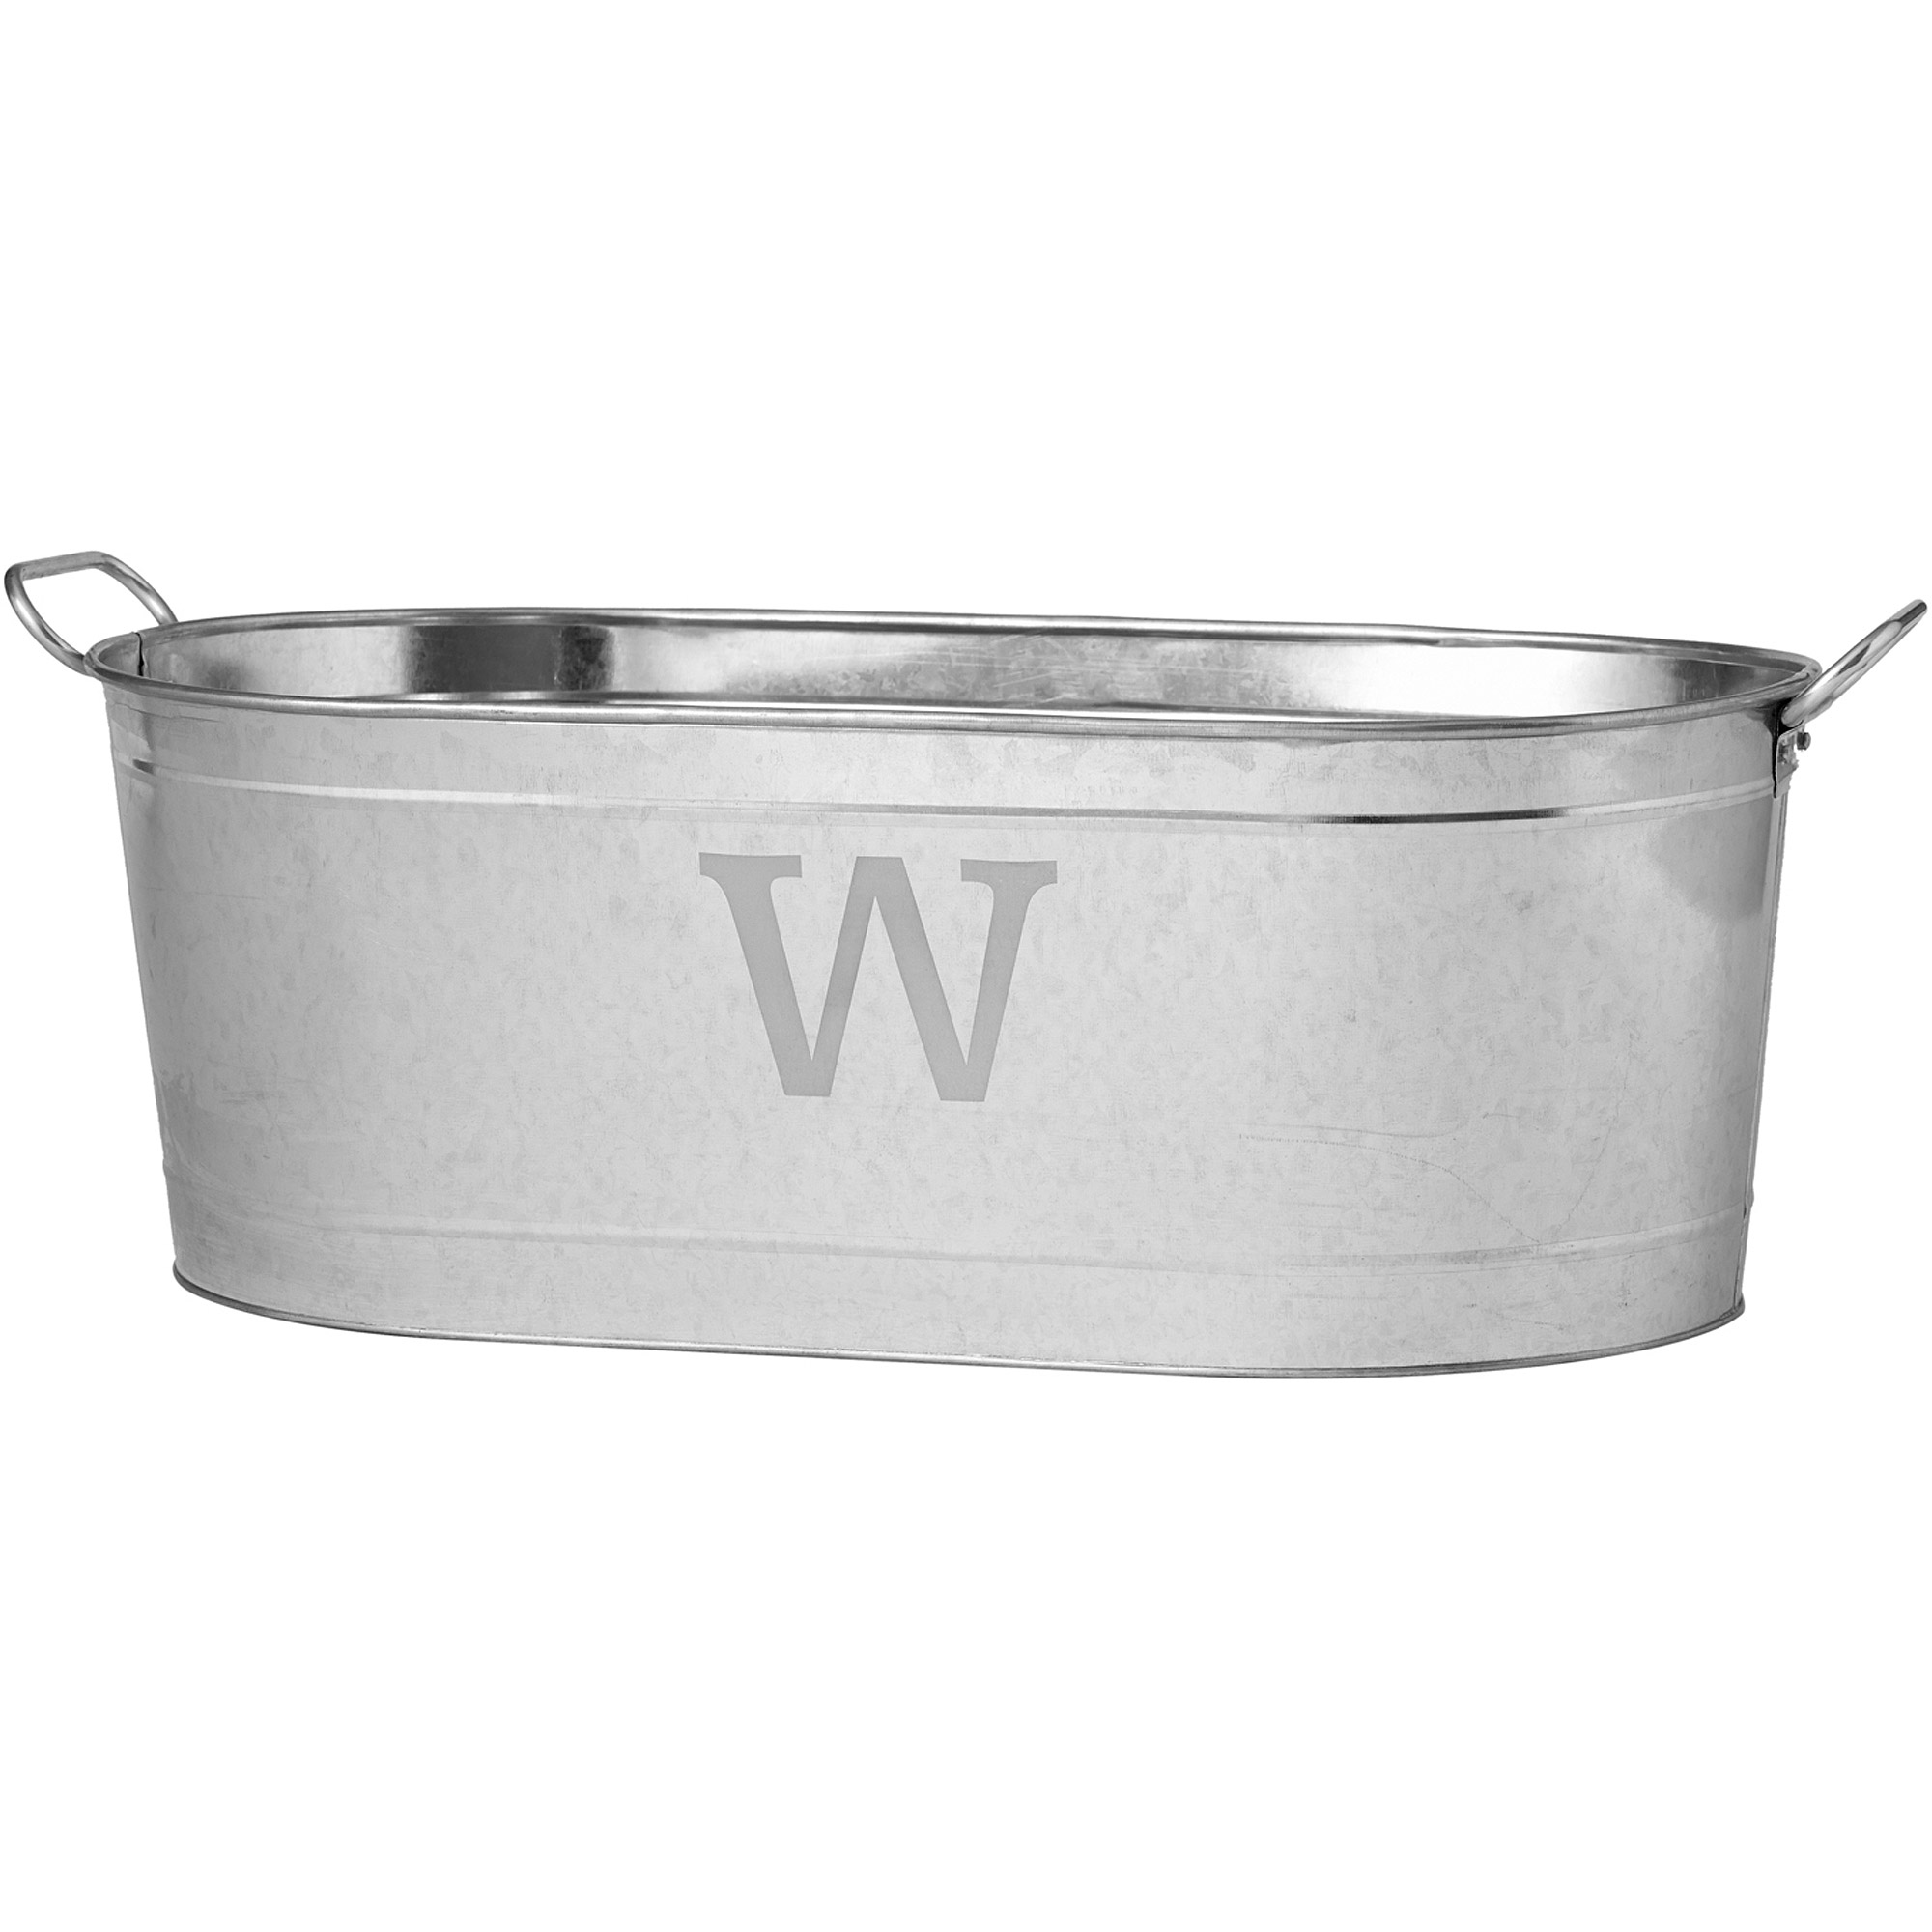 Personalized Galvanized Beverage Tub, Initial